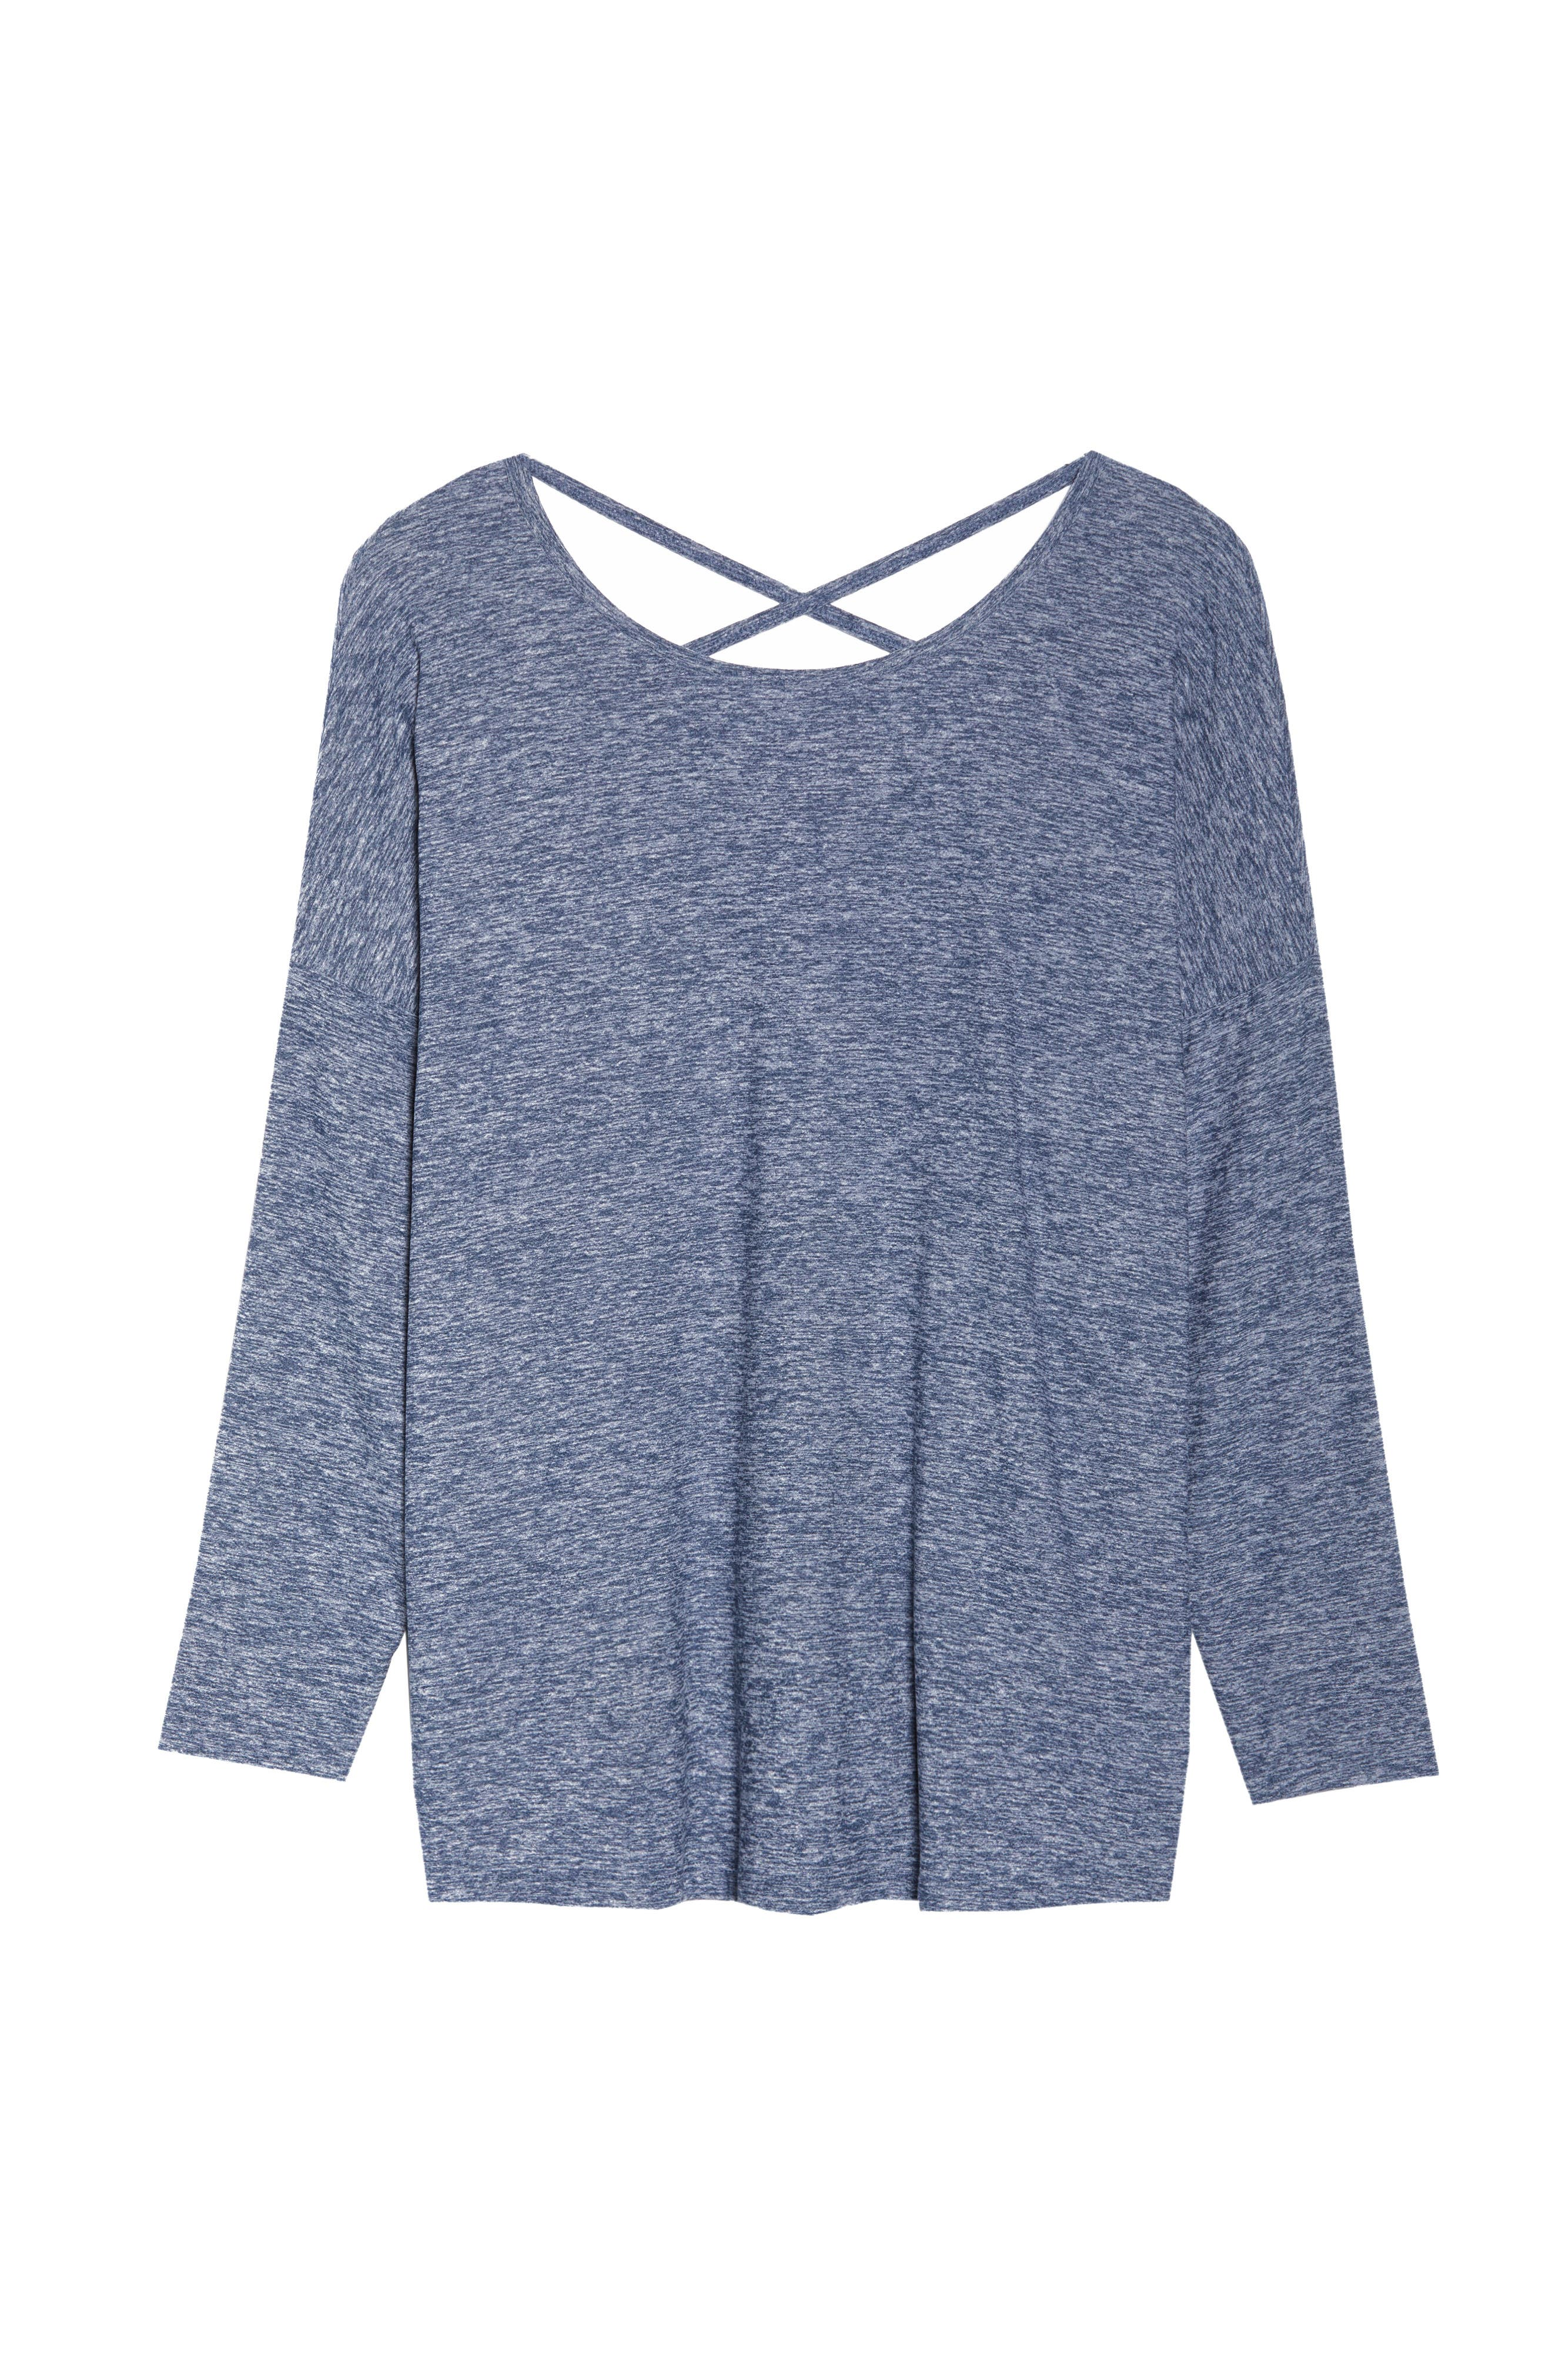 Weekend Traveler Pullover,                             Alternate thumbnail 7, color,                             White/ Outlaw Navy